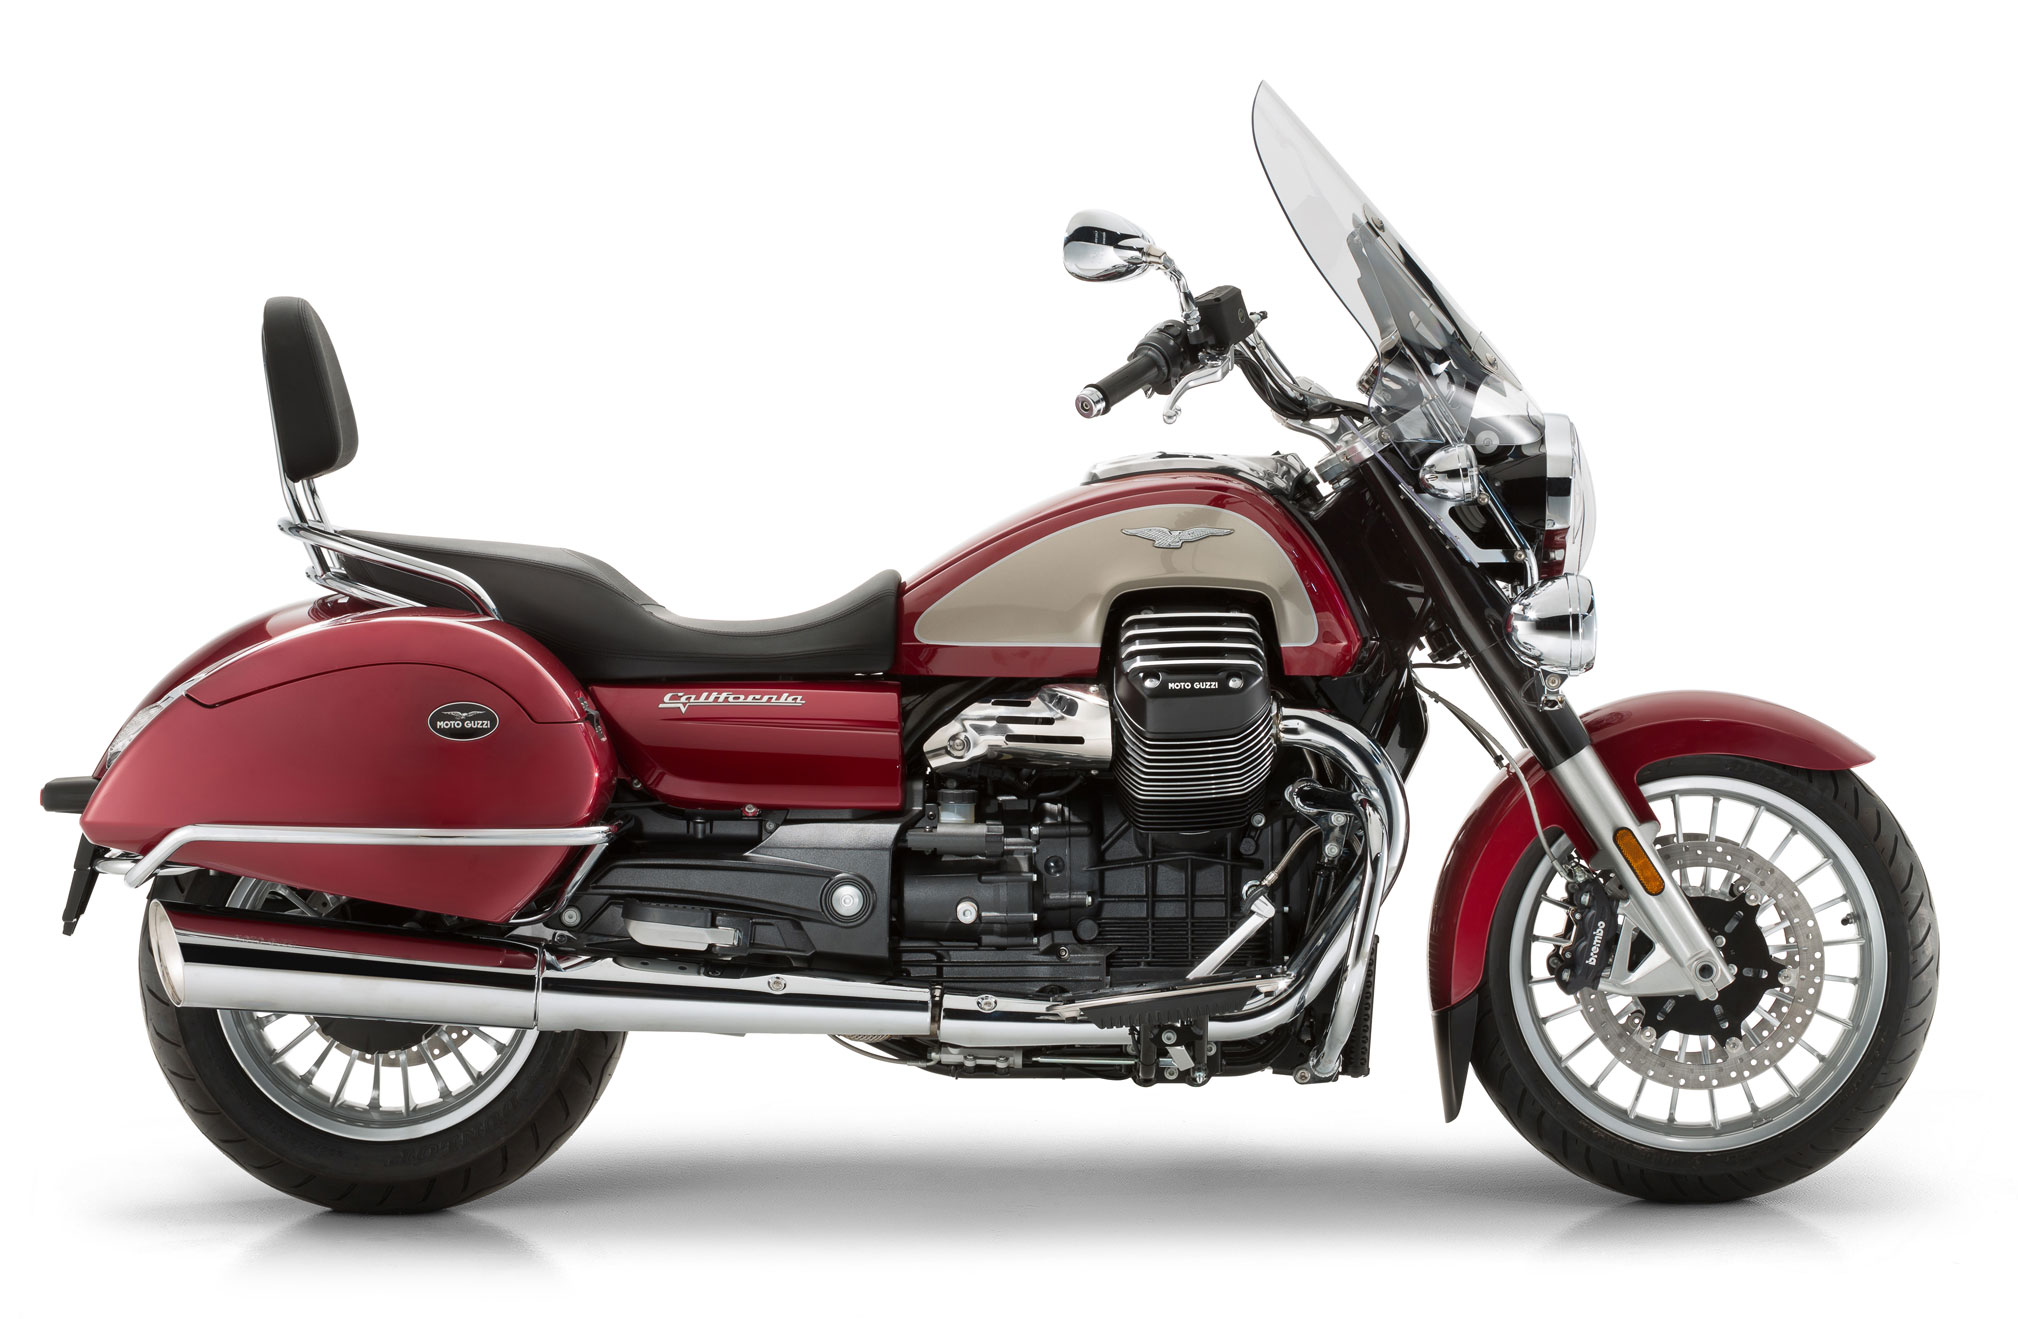 2018 Moto Guzzi California Touring